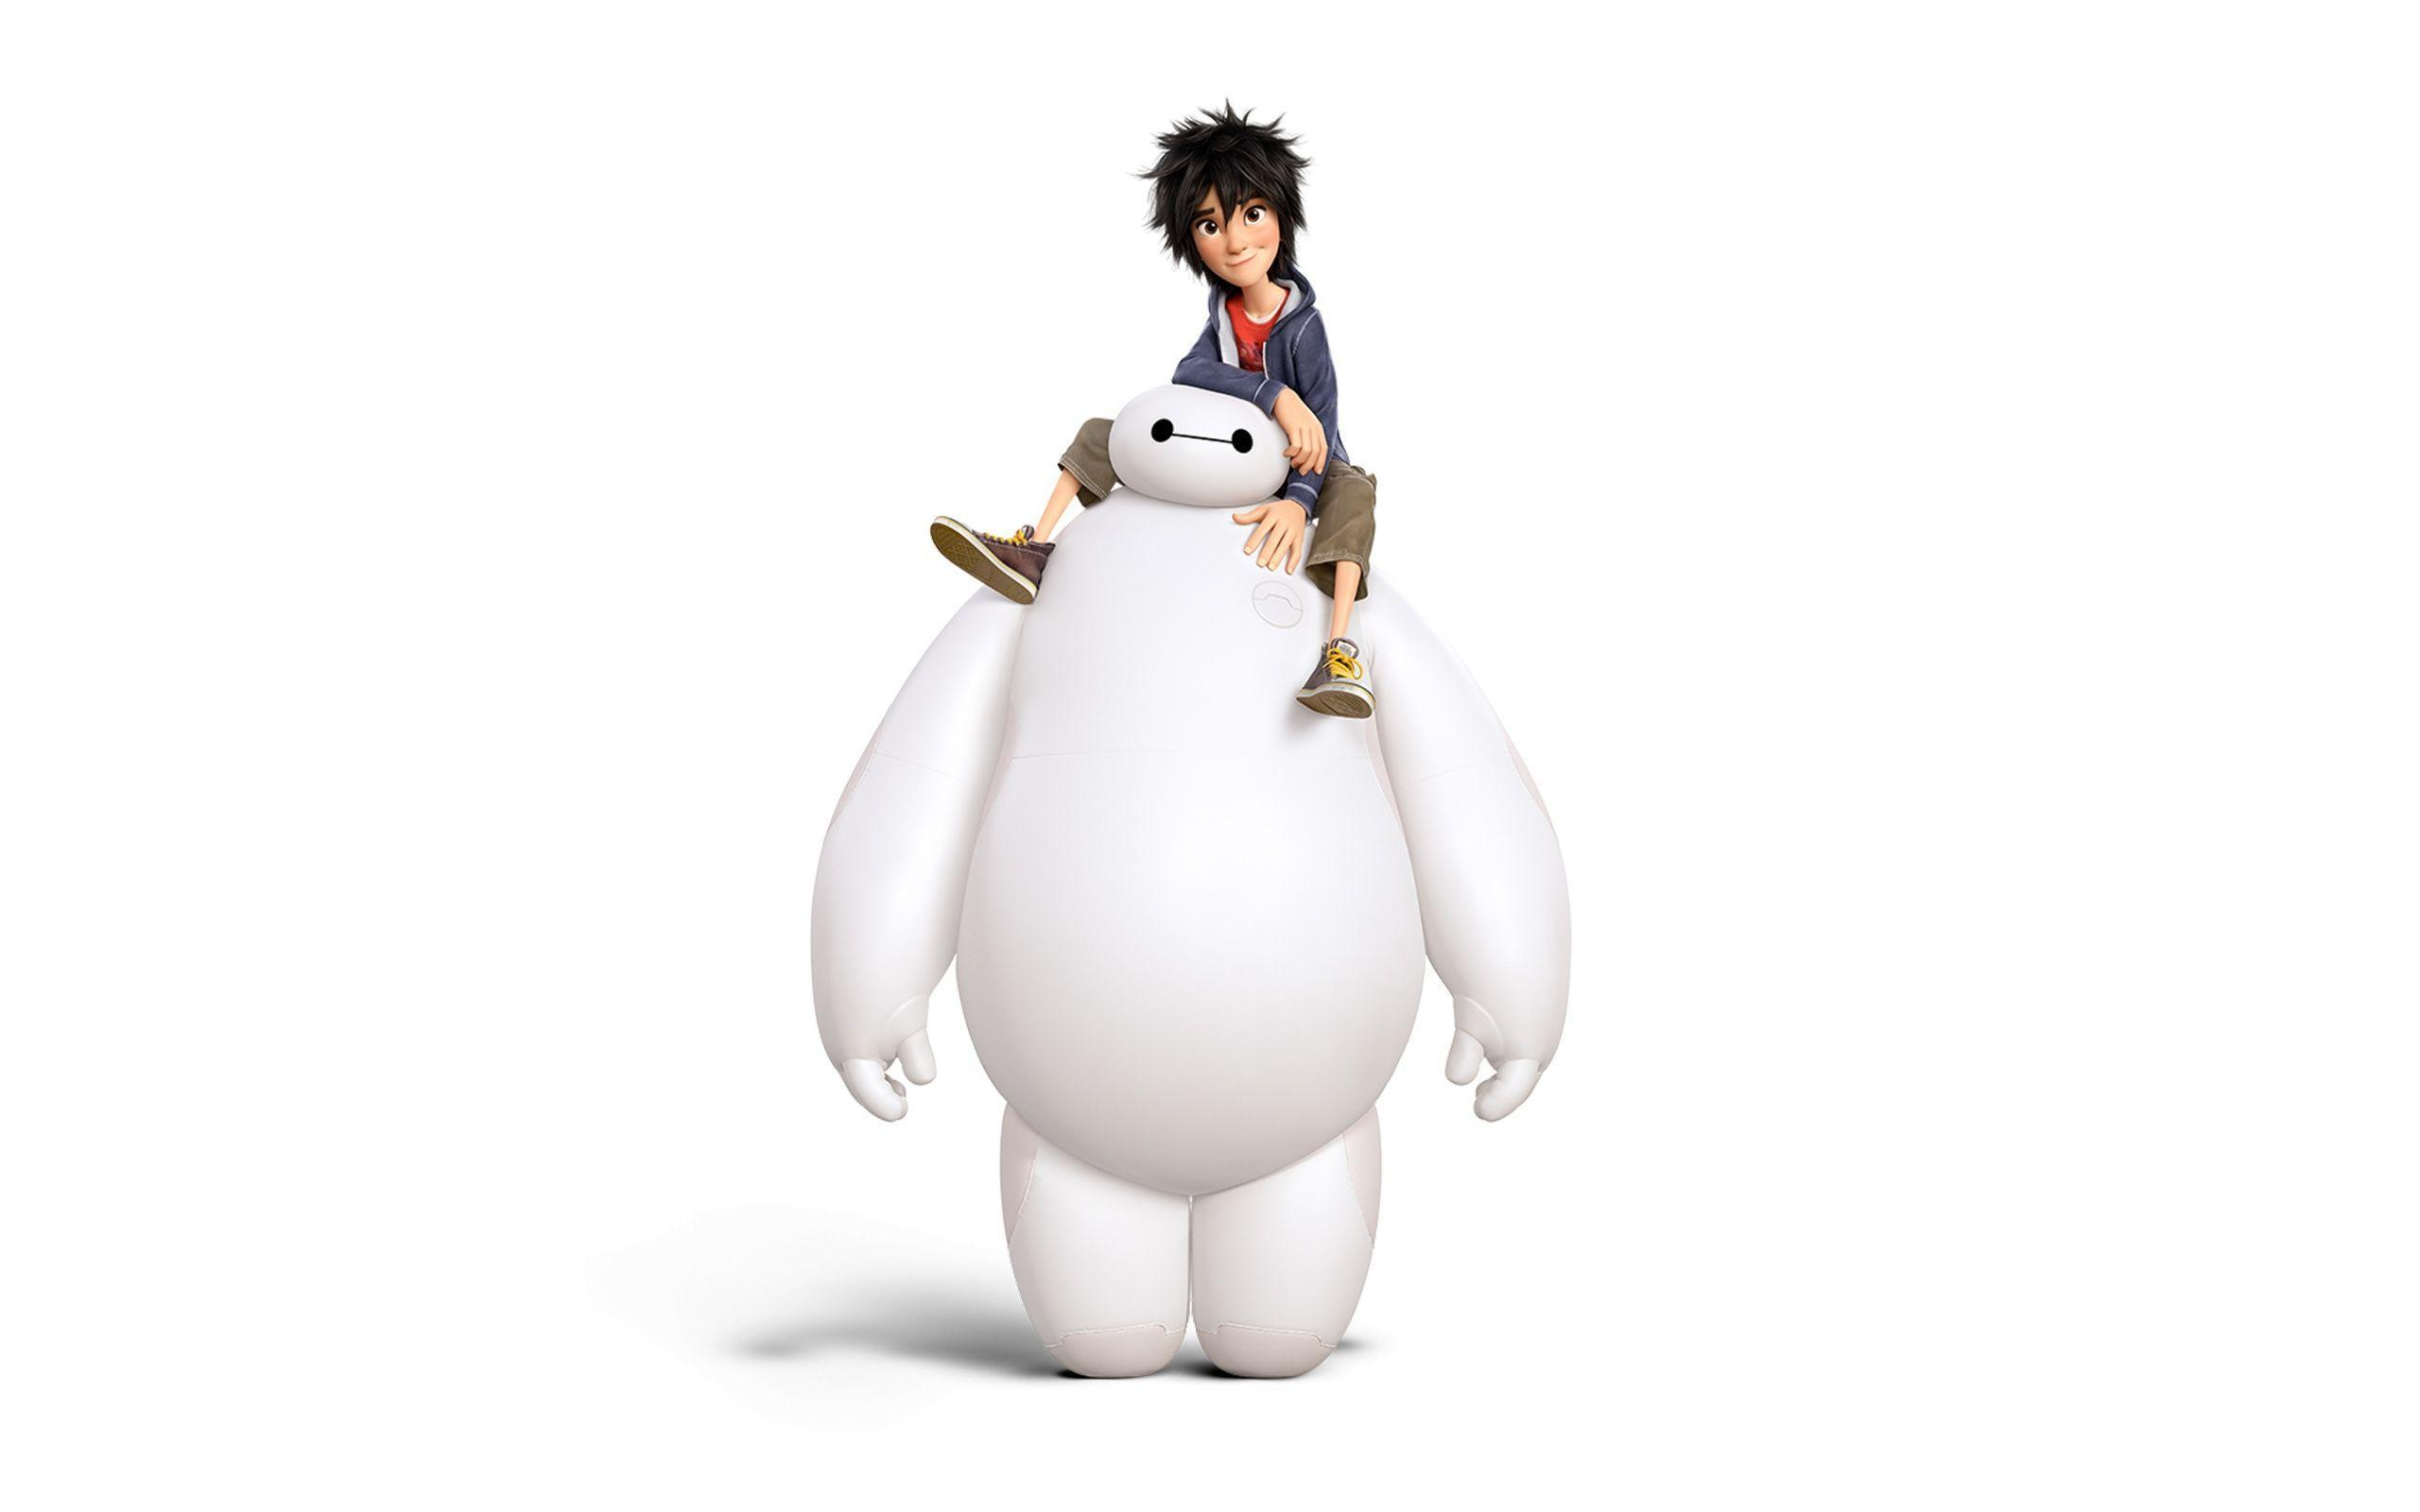 Full HD 1080p baymax Wallpapers, Backgrounds HD, baymax Photos